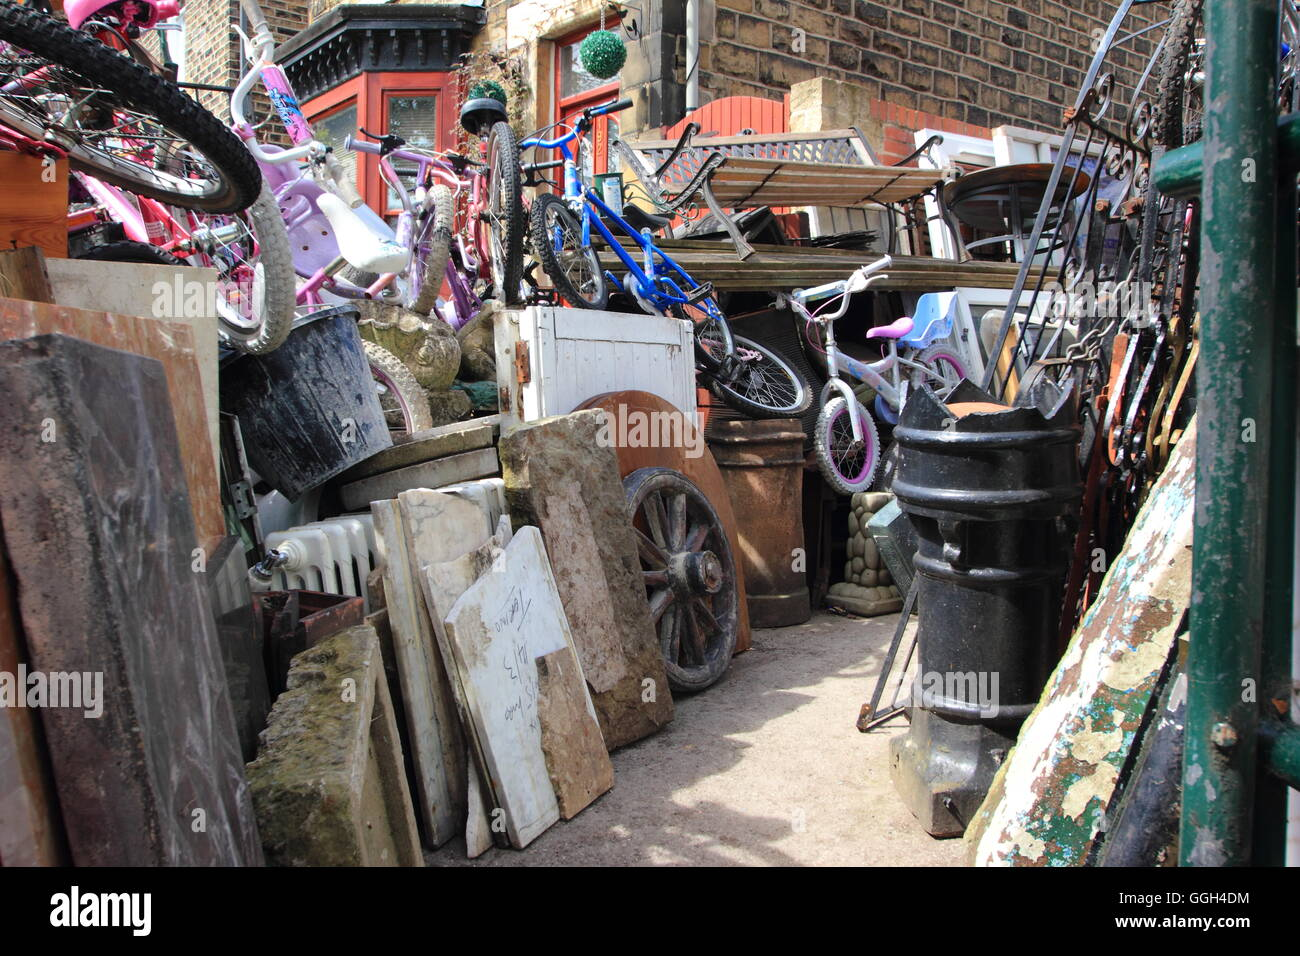 An eclectic mix of salvaged items for sale in the yard of T H Goode's store in the heart of Sheffield's - Stock Image